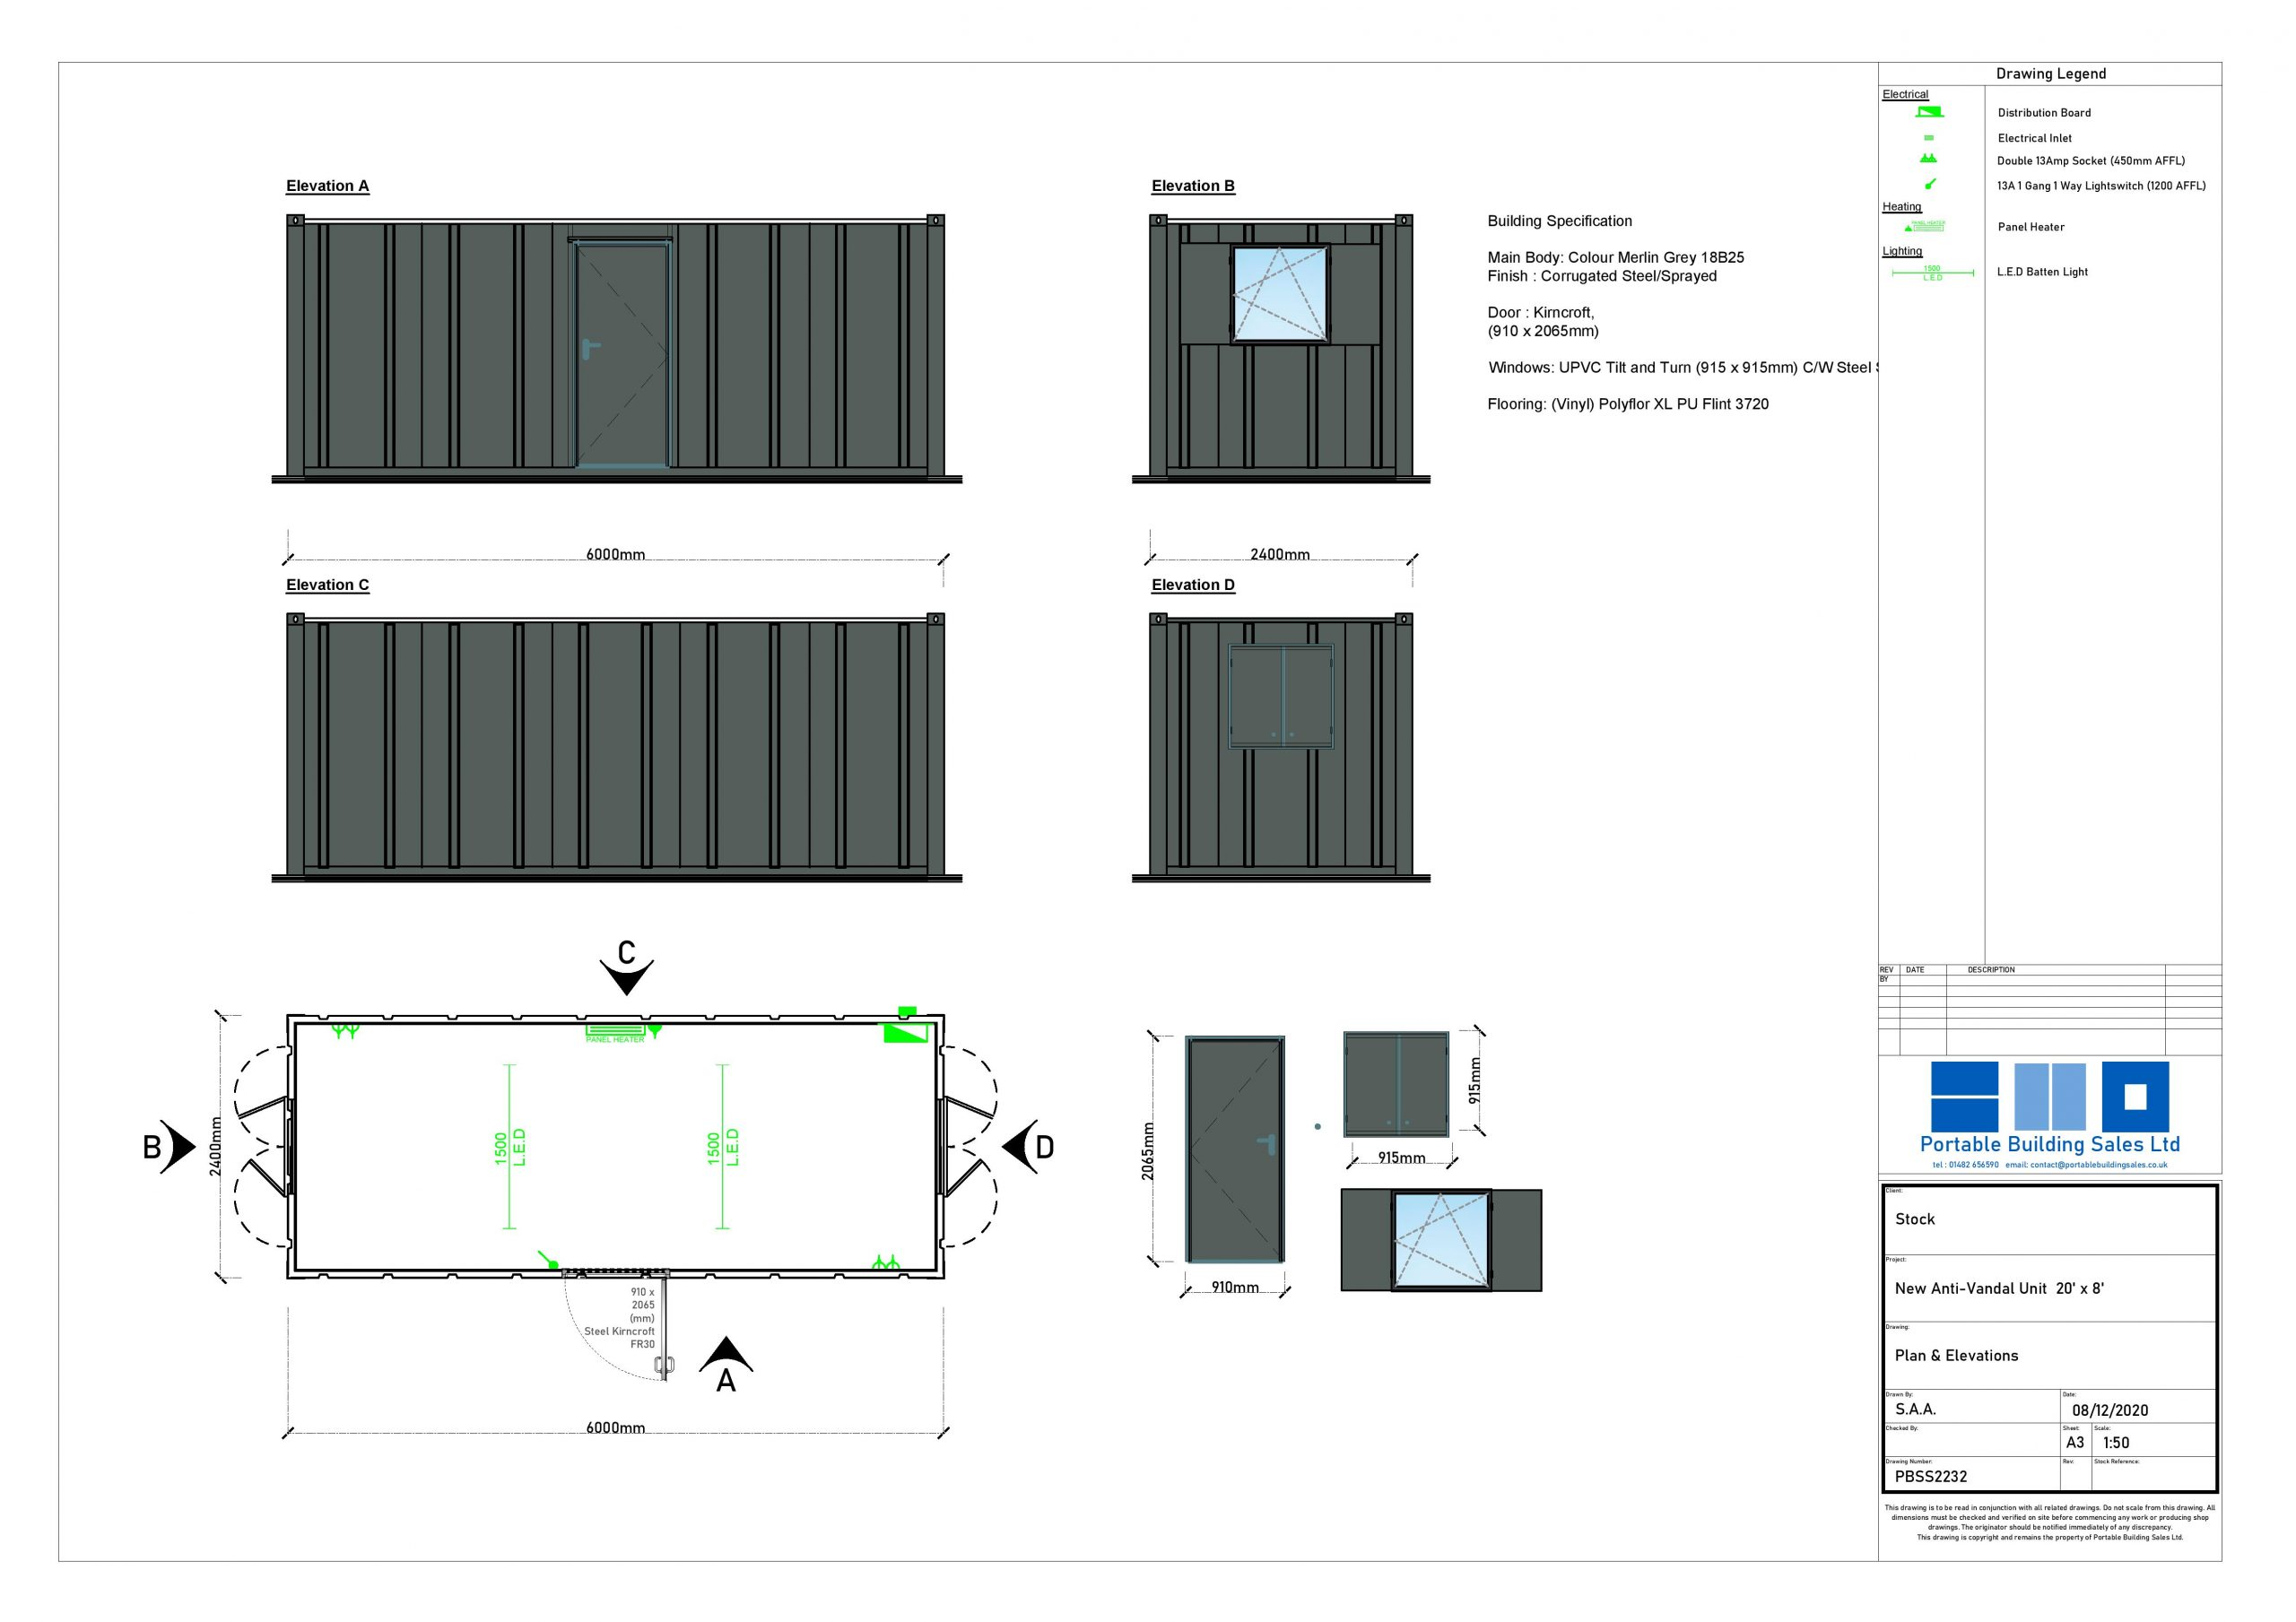 Portable Building Drawing Image